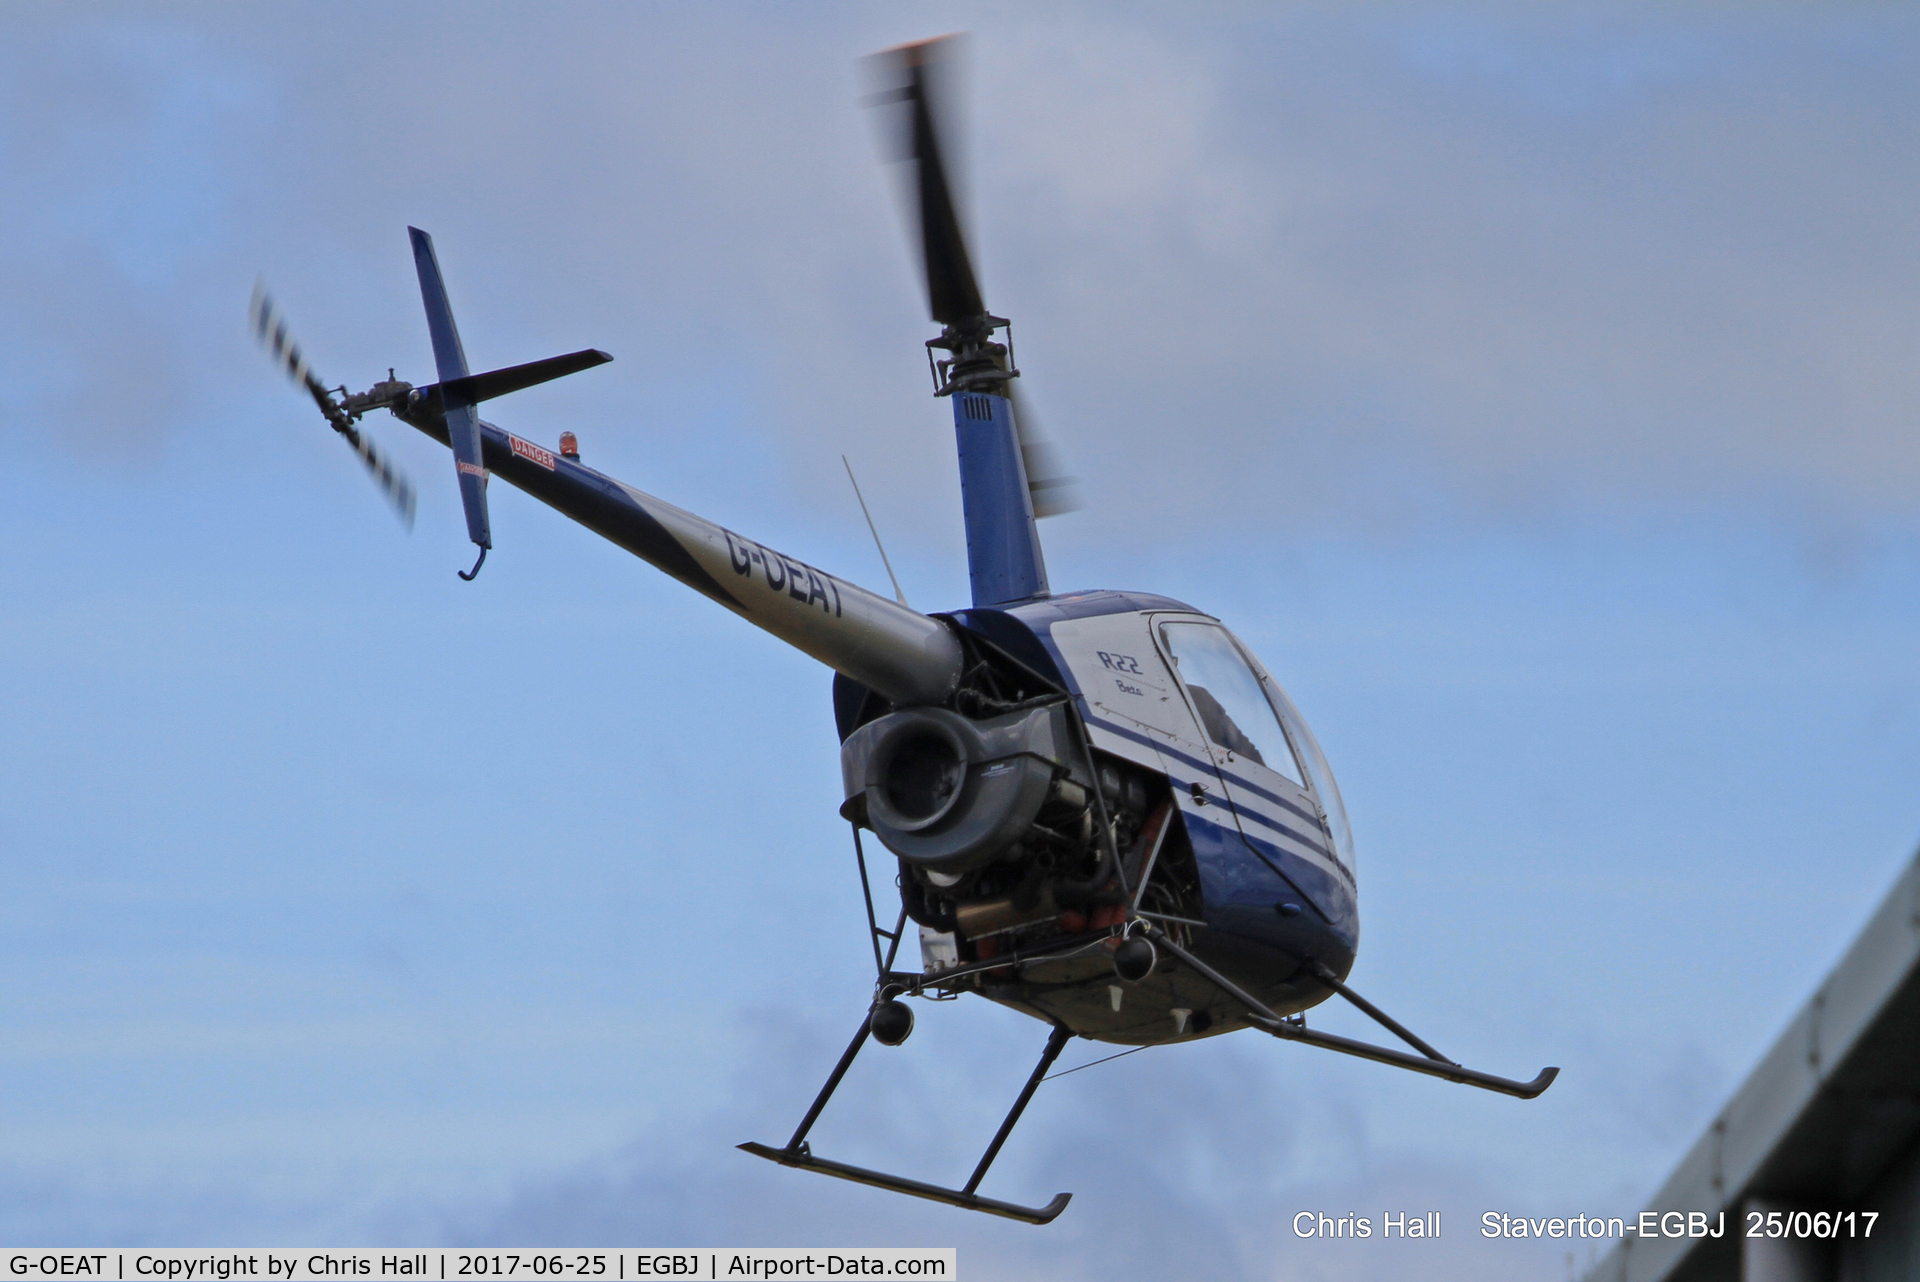 G-OEAT, 1987 Robinson R22 Beta C/N 0650, Project Propeller at Staverton